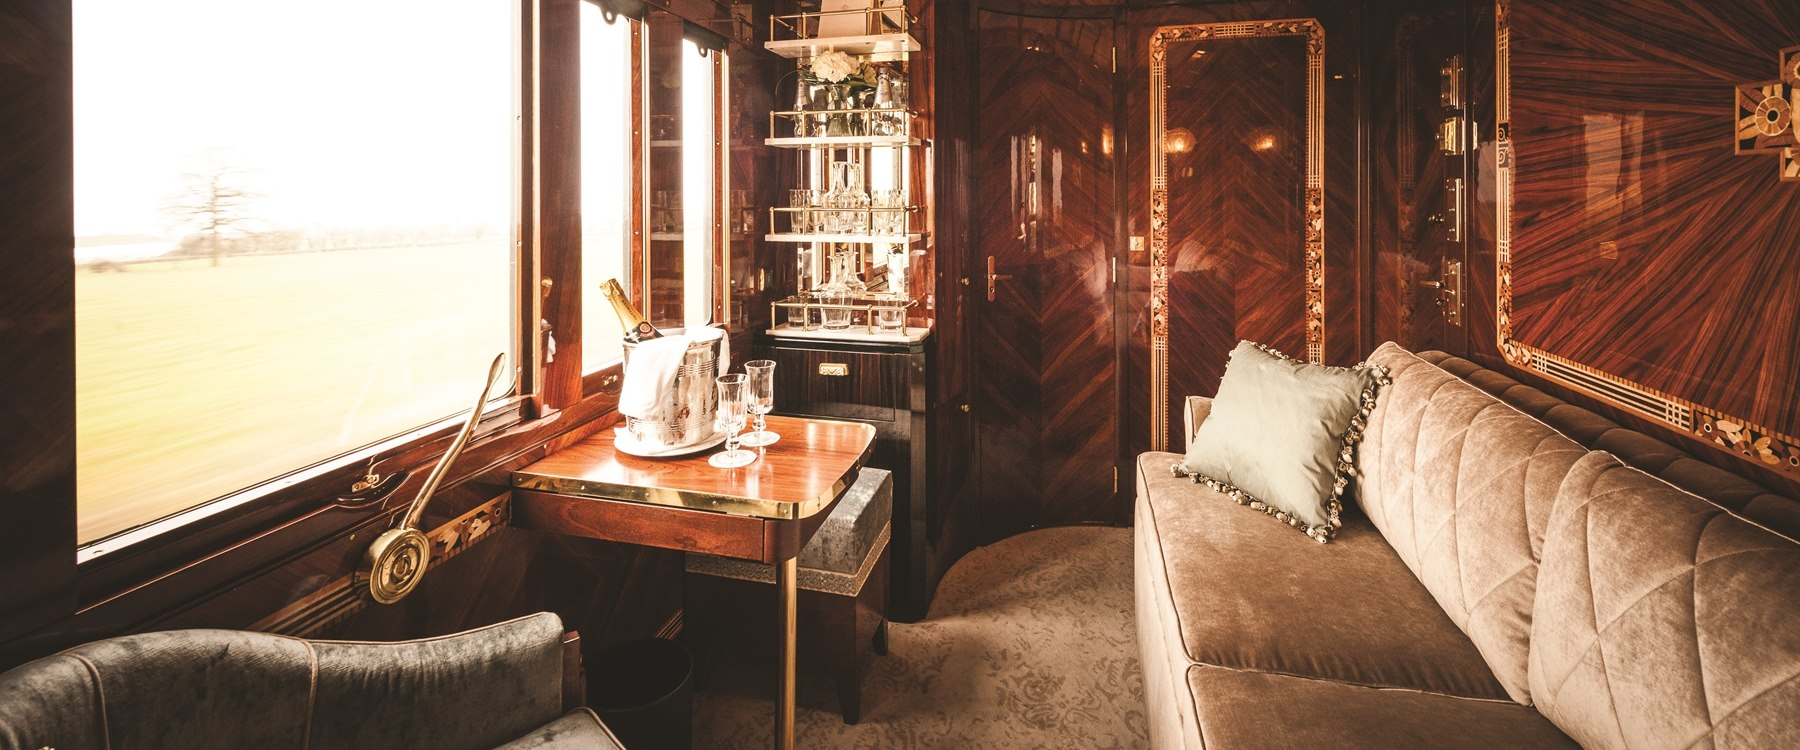 Accommodation on board Venice Simplon-Orient-Express